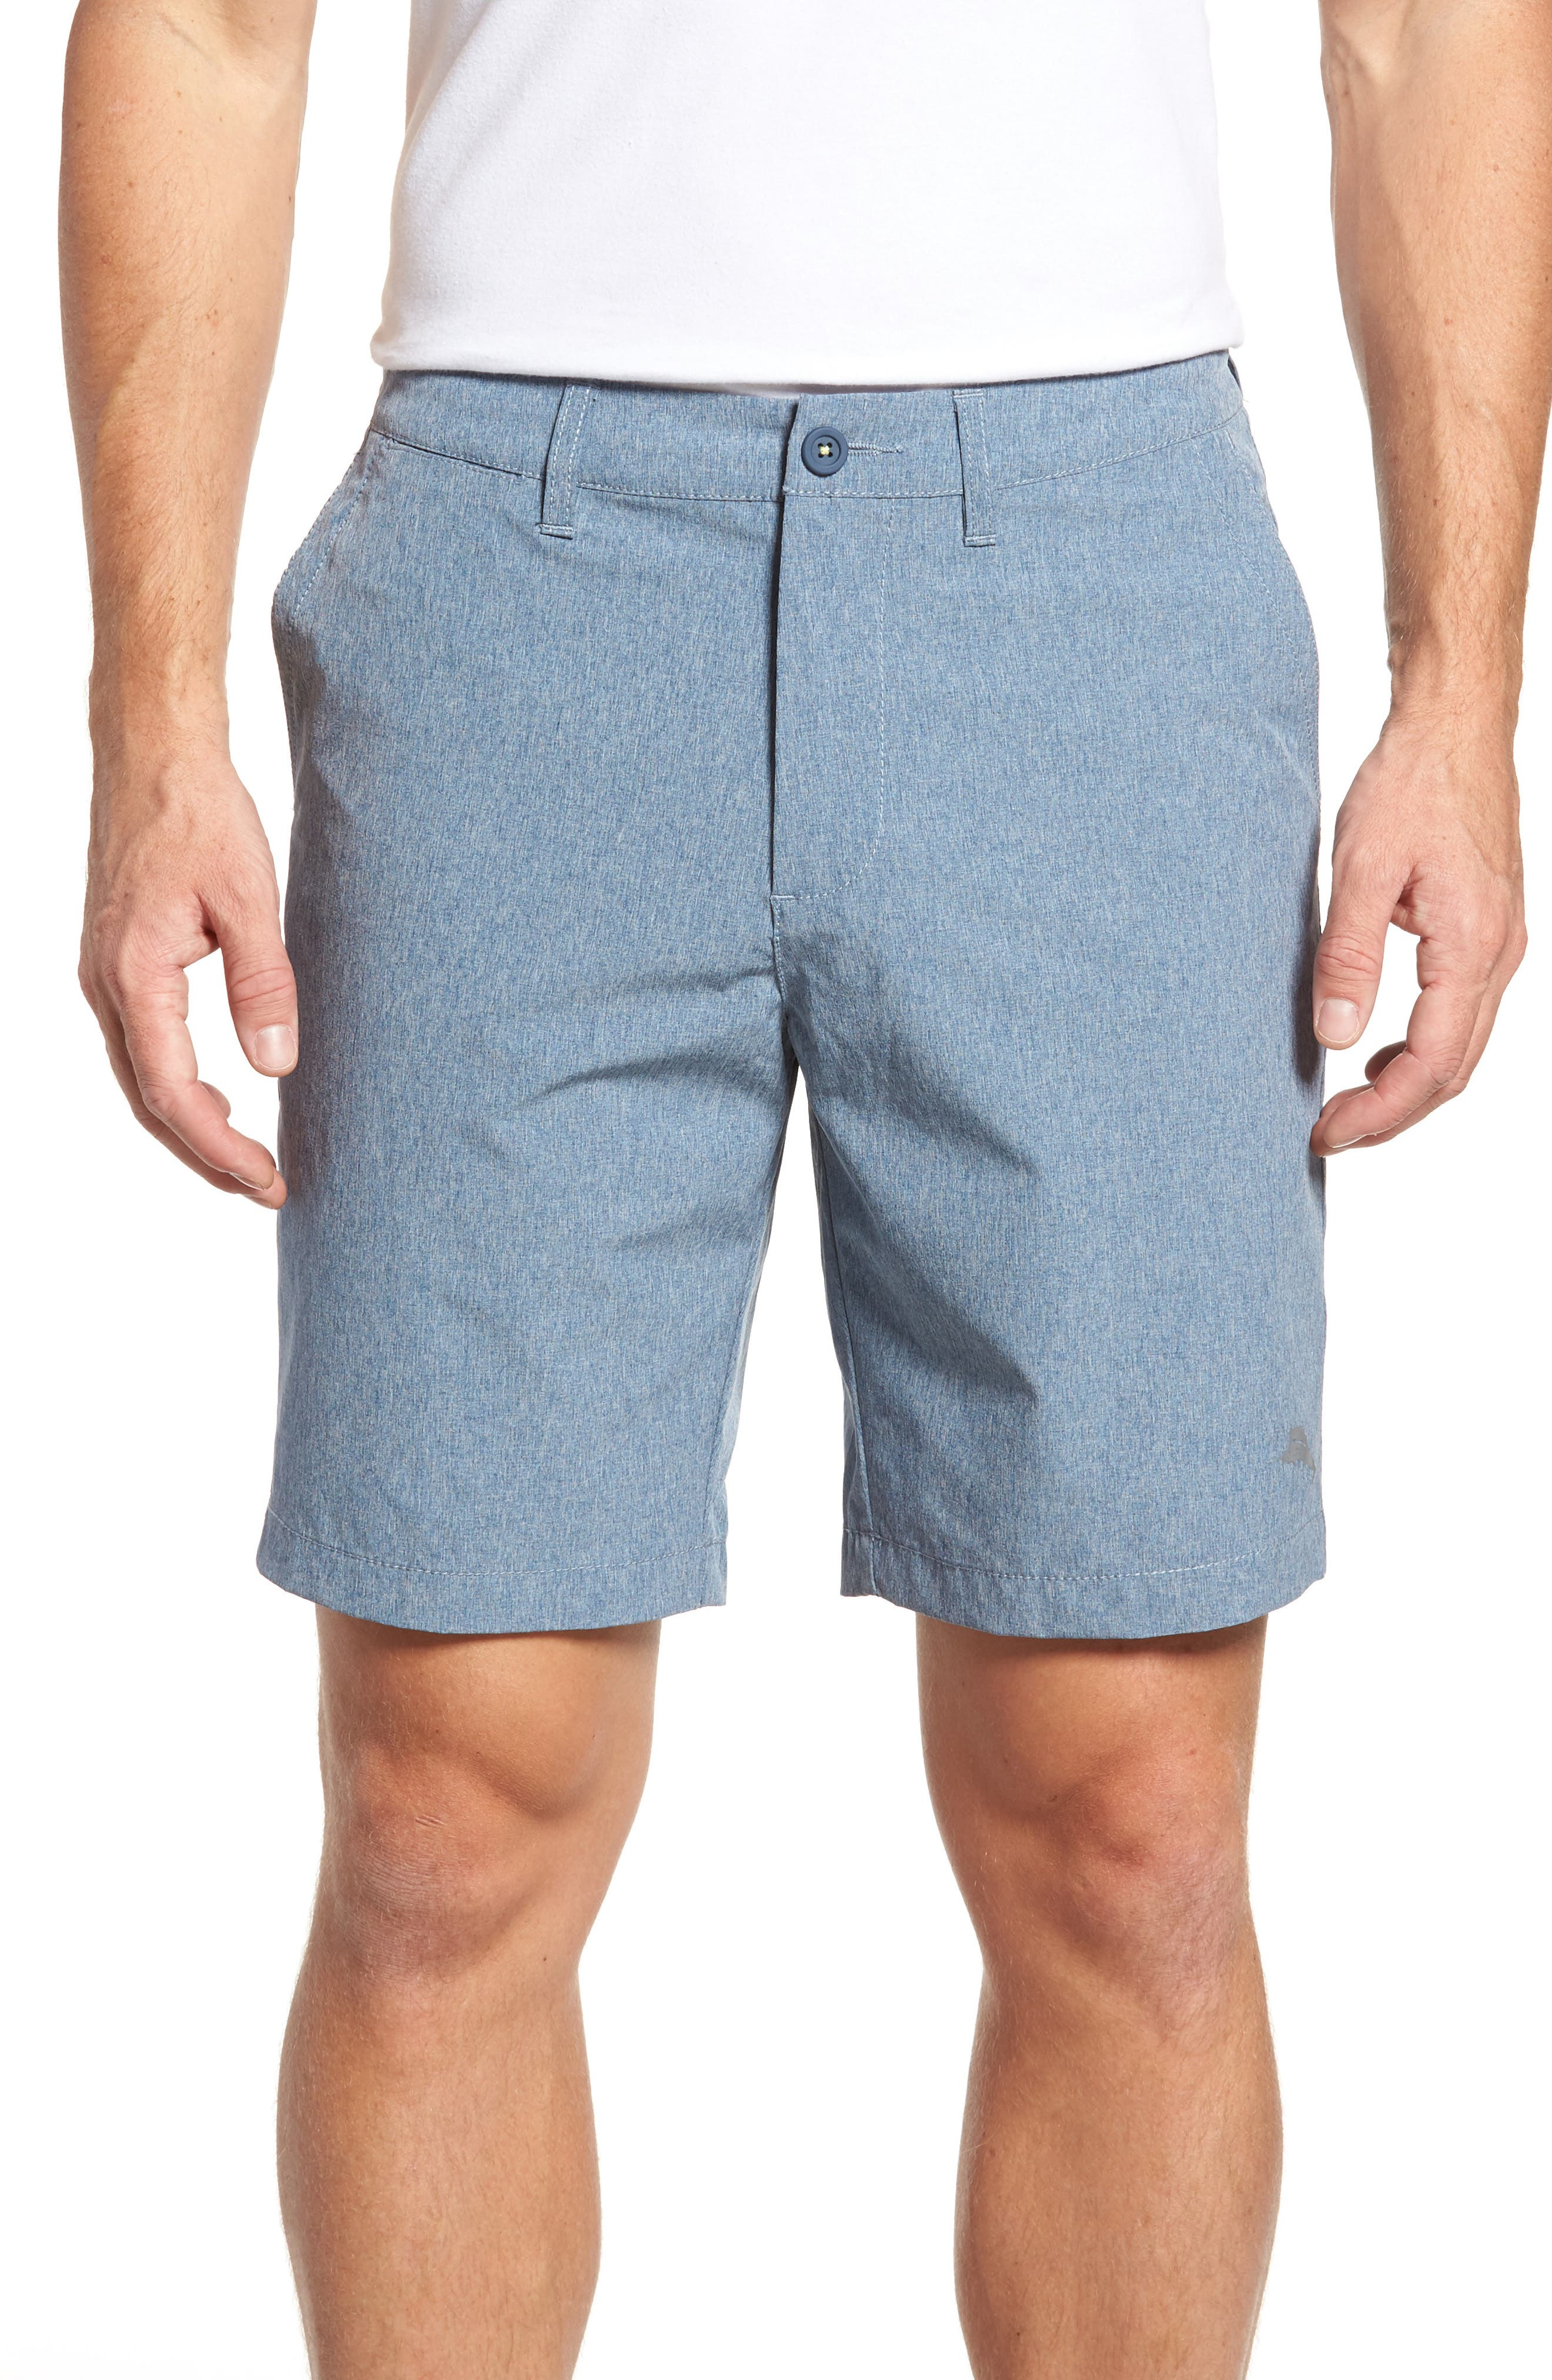 Tommy Bahama Cayman Isles Hybrid Swim Shorts (Big & Tall)